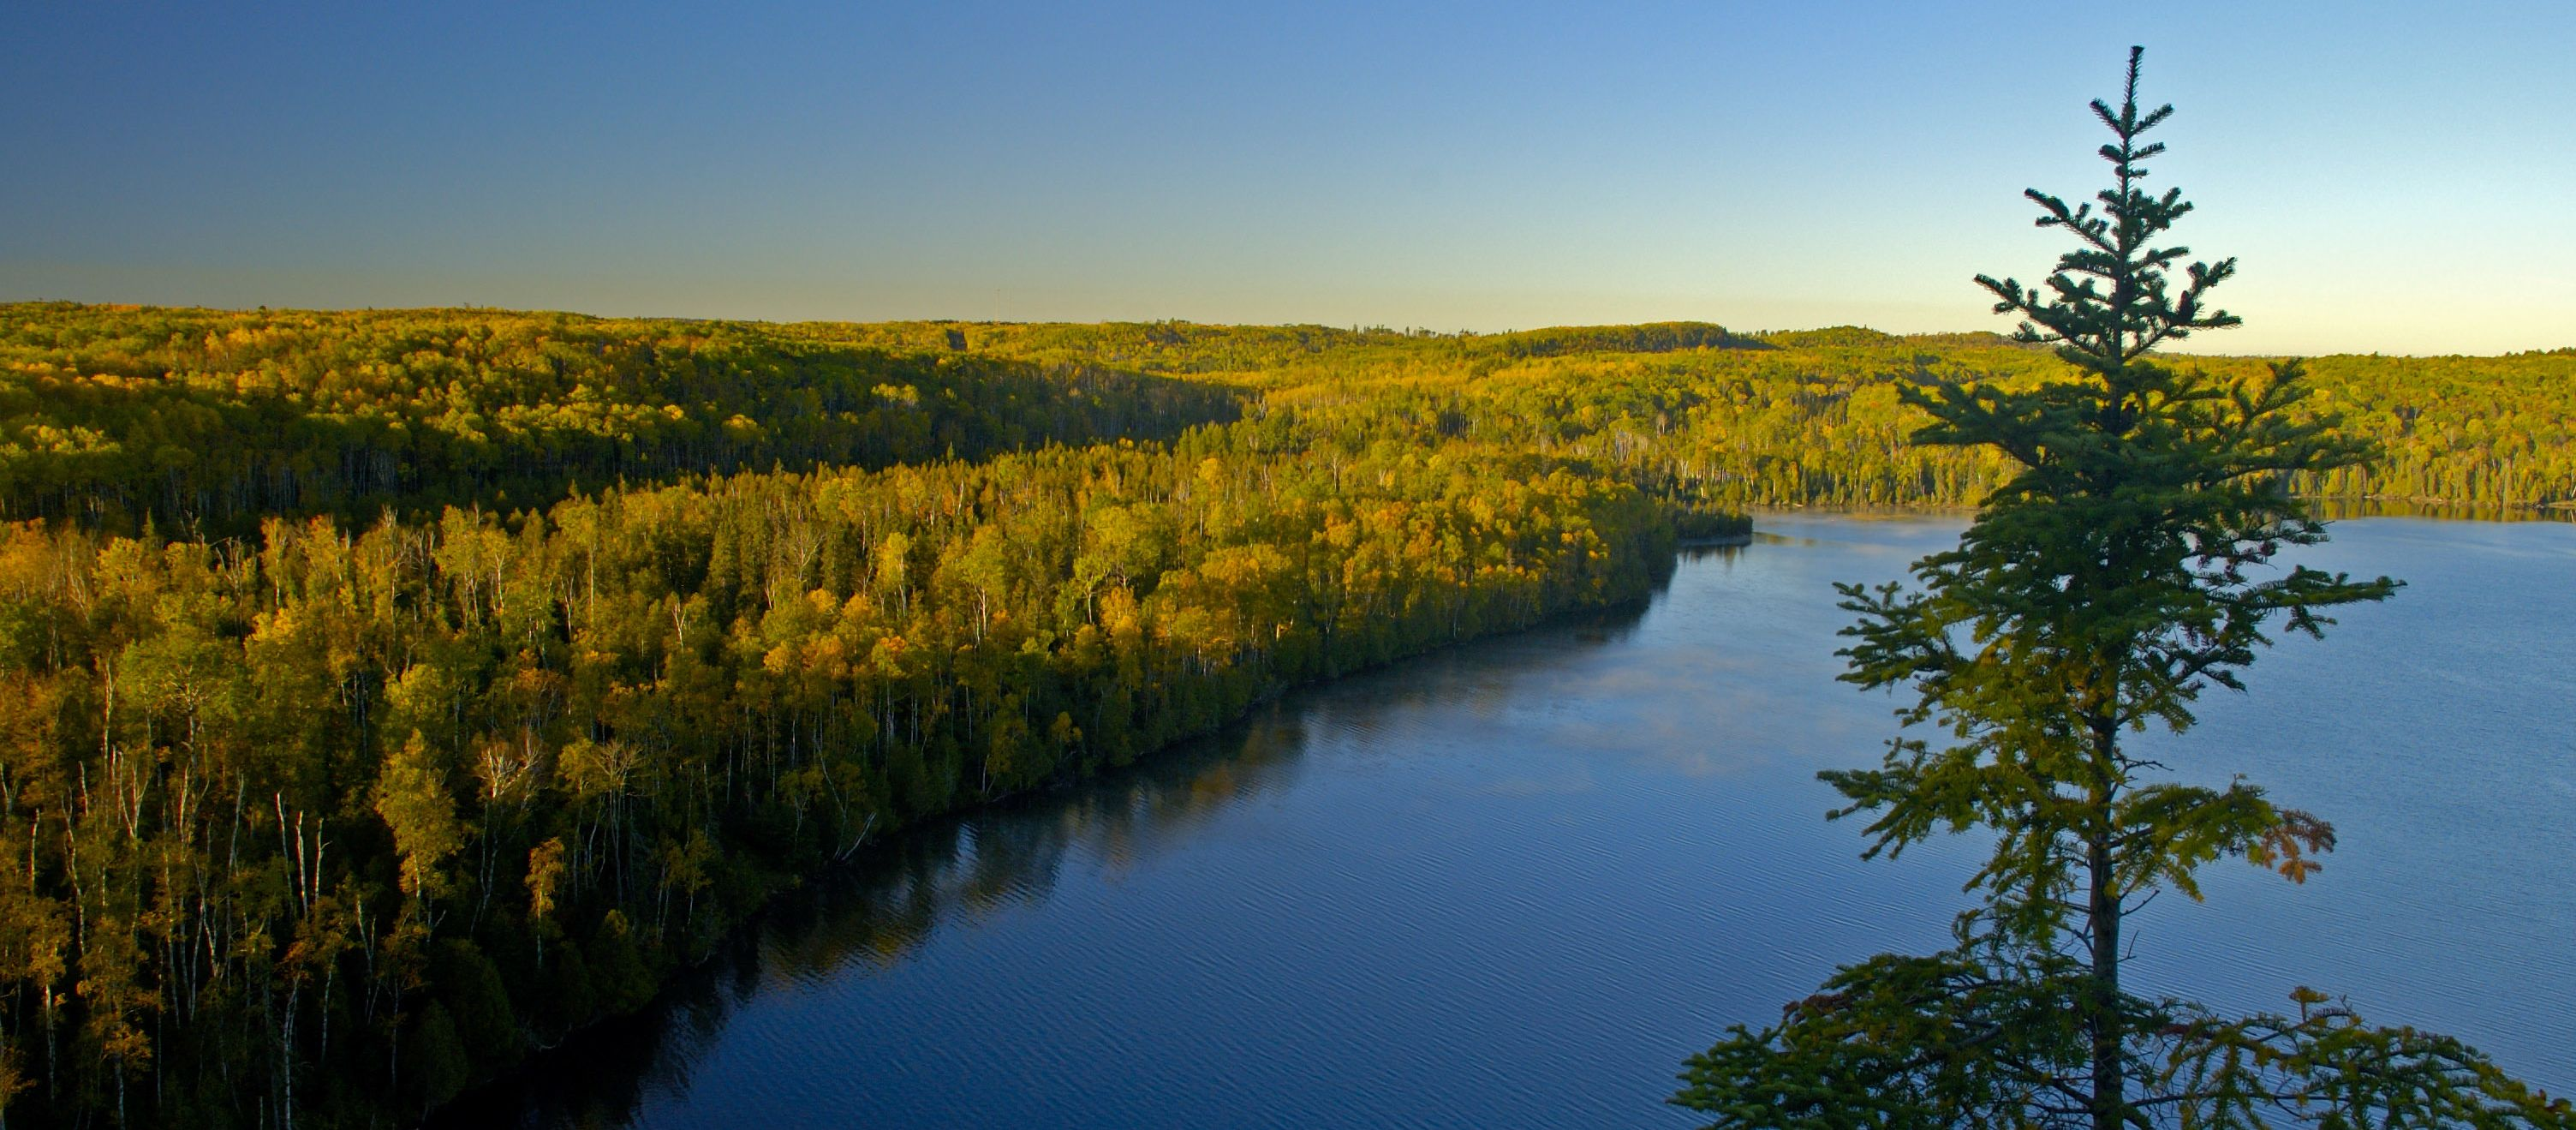 Minnesota an den Great Lakes: Hungry Jack Lake, Bluff Scenic Overlook